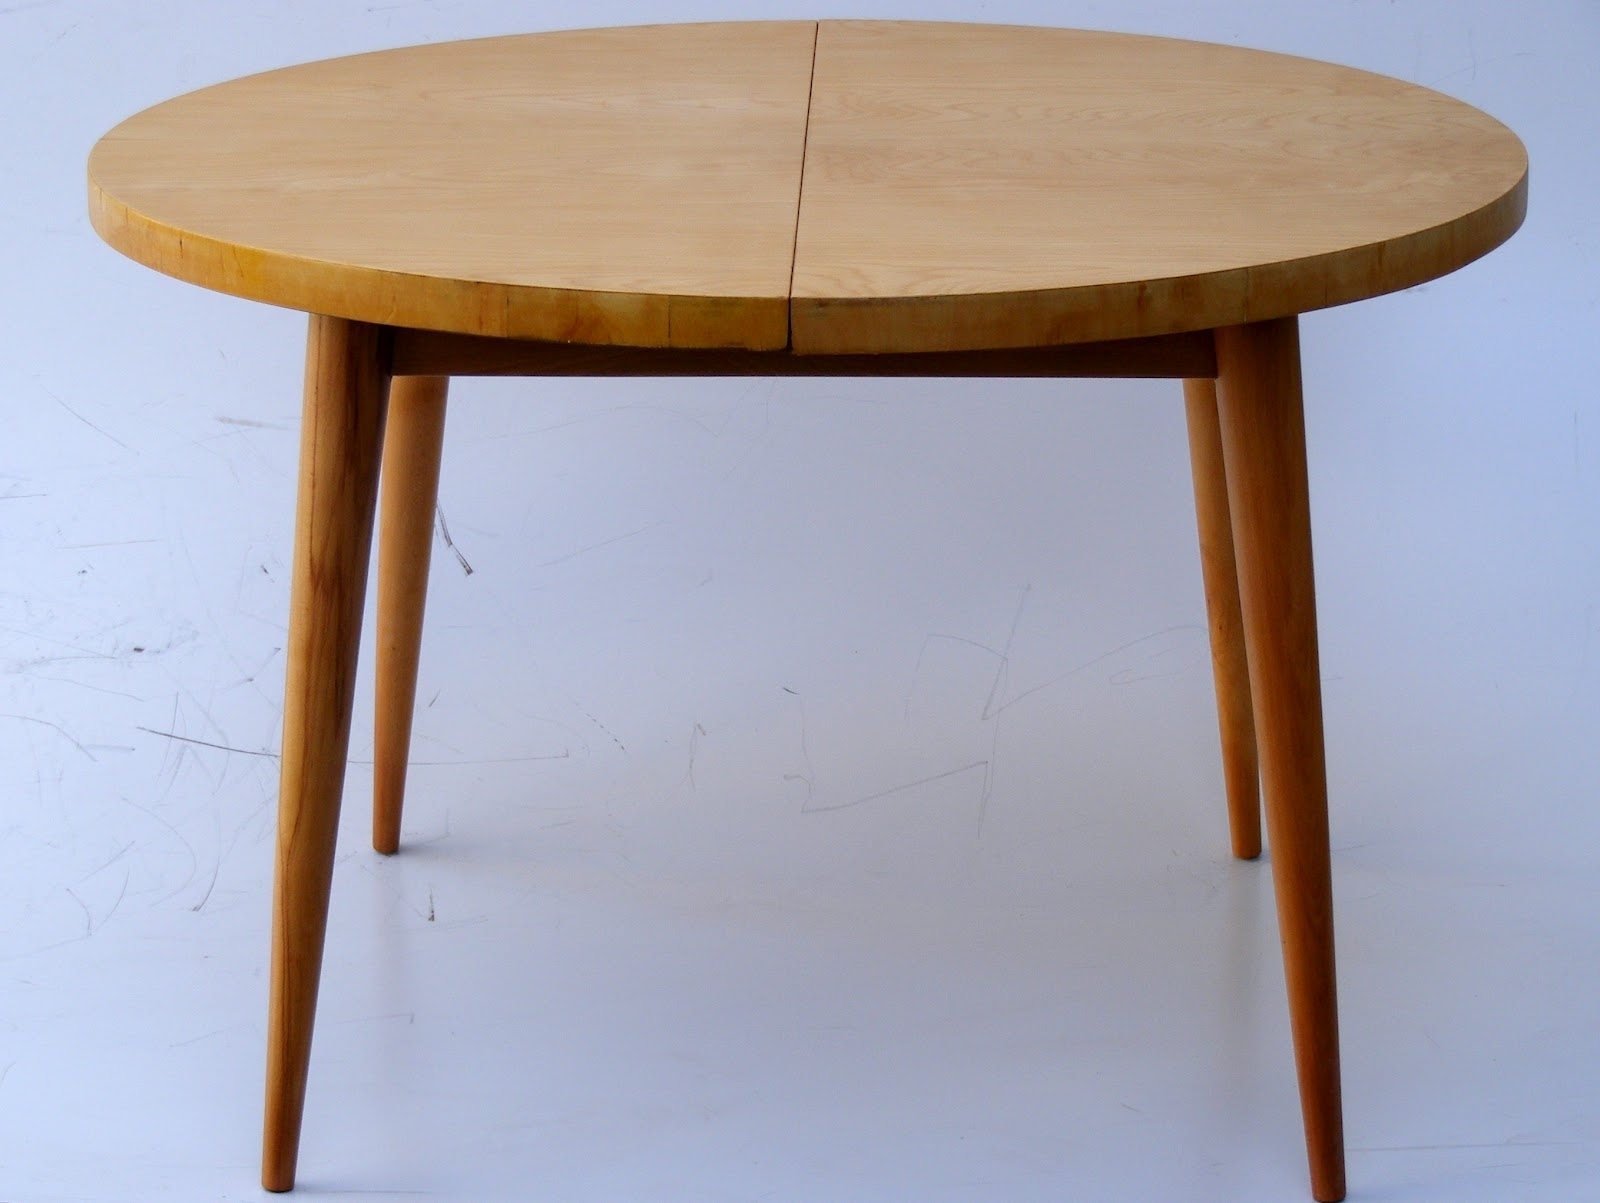 Trendy Reasons To Invest In Round Extendable Dining Table – Blogbeen In Extended Round Dining Tables (View 9 of 25)